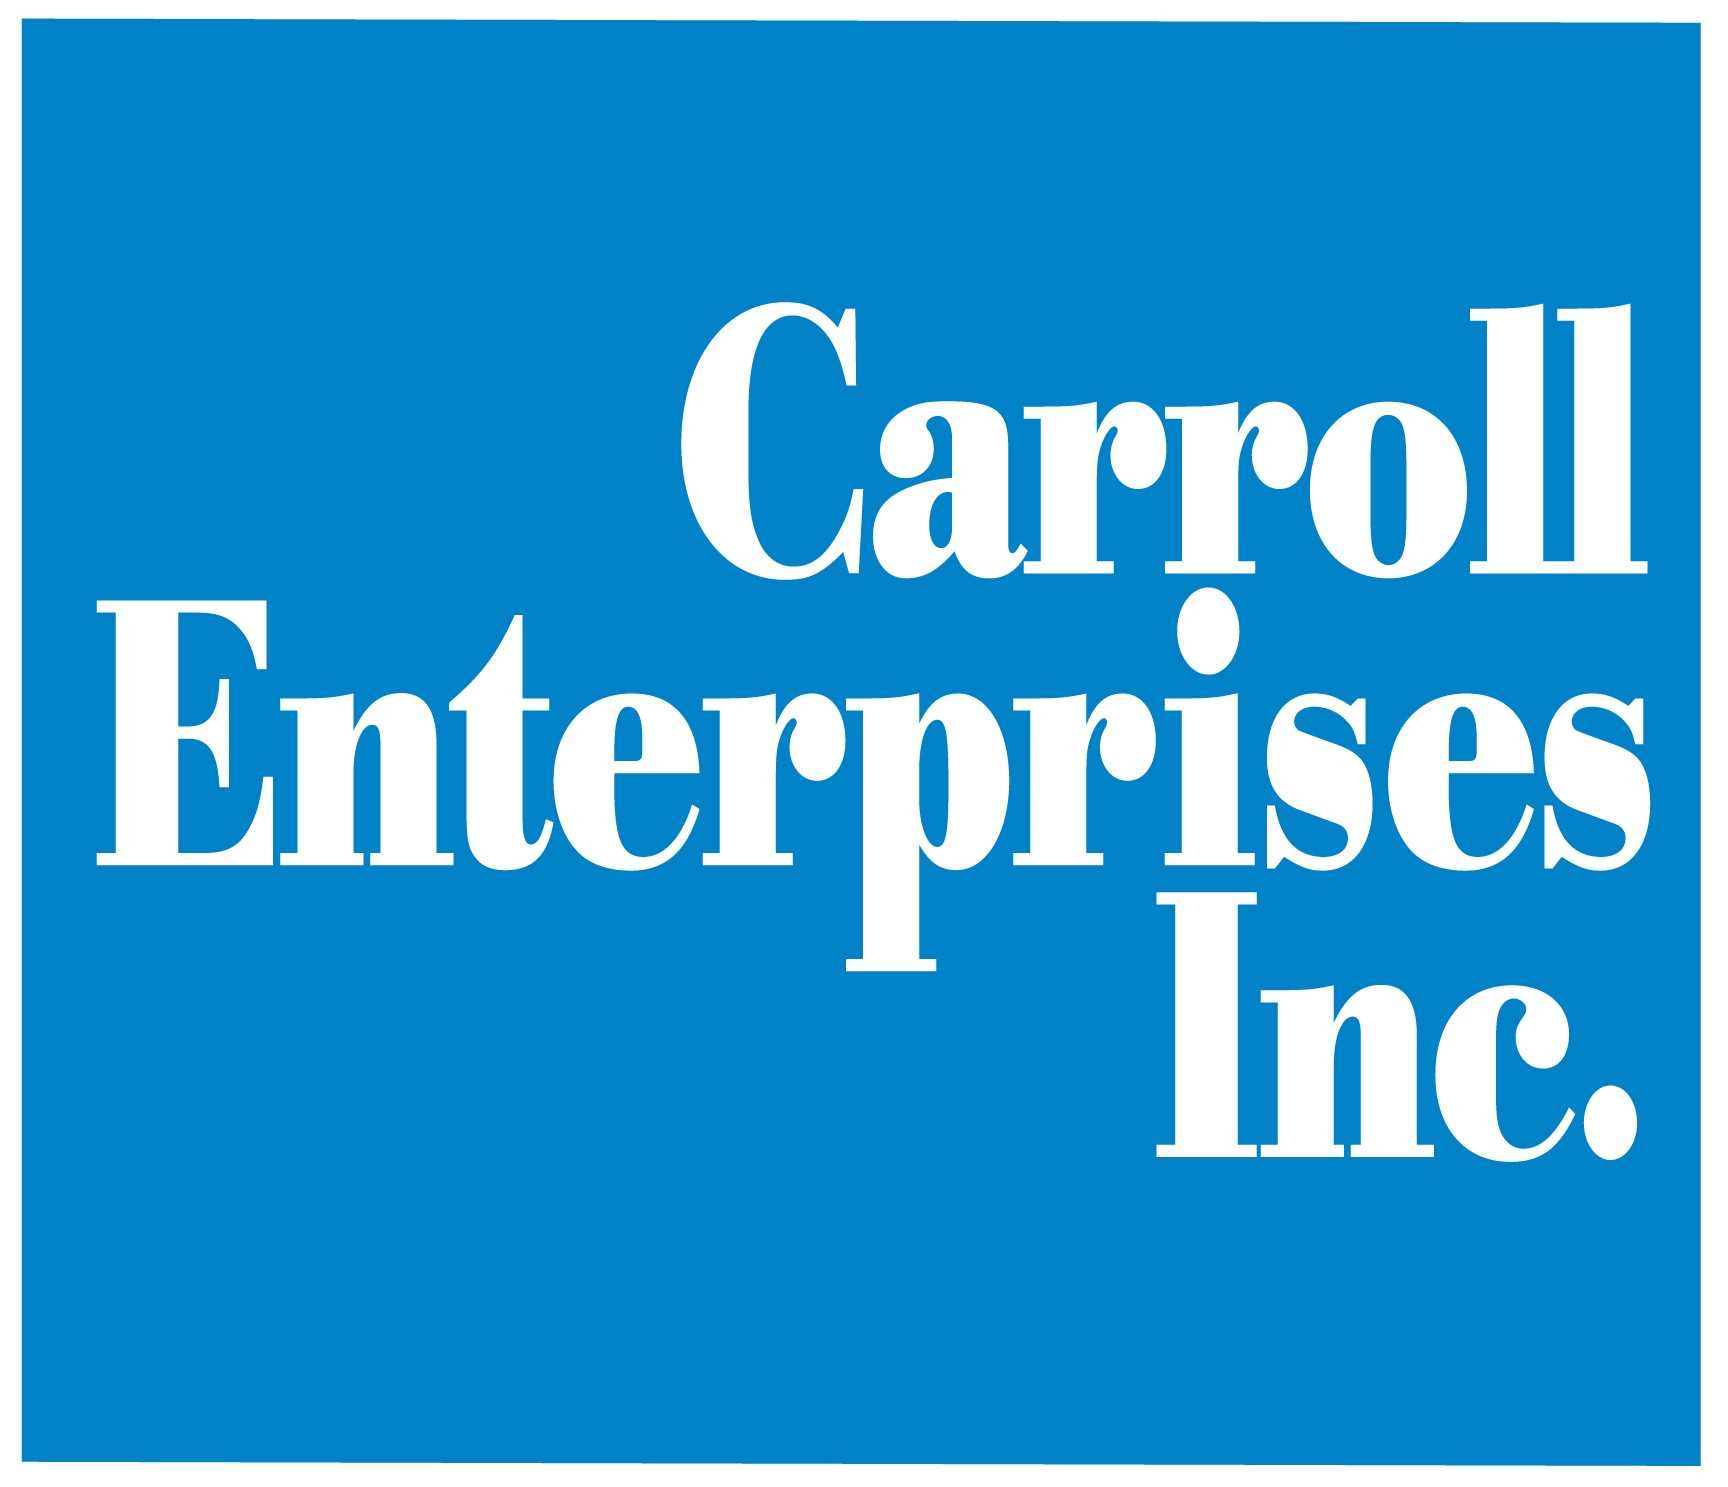 Carroll Enterprises